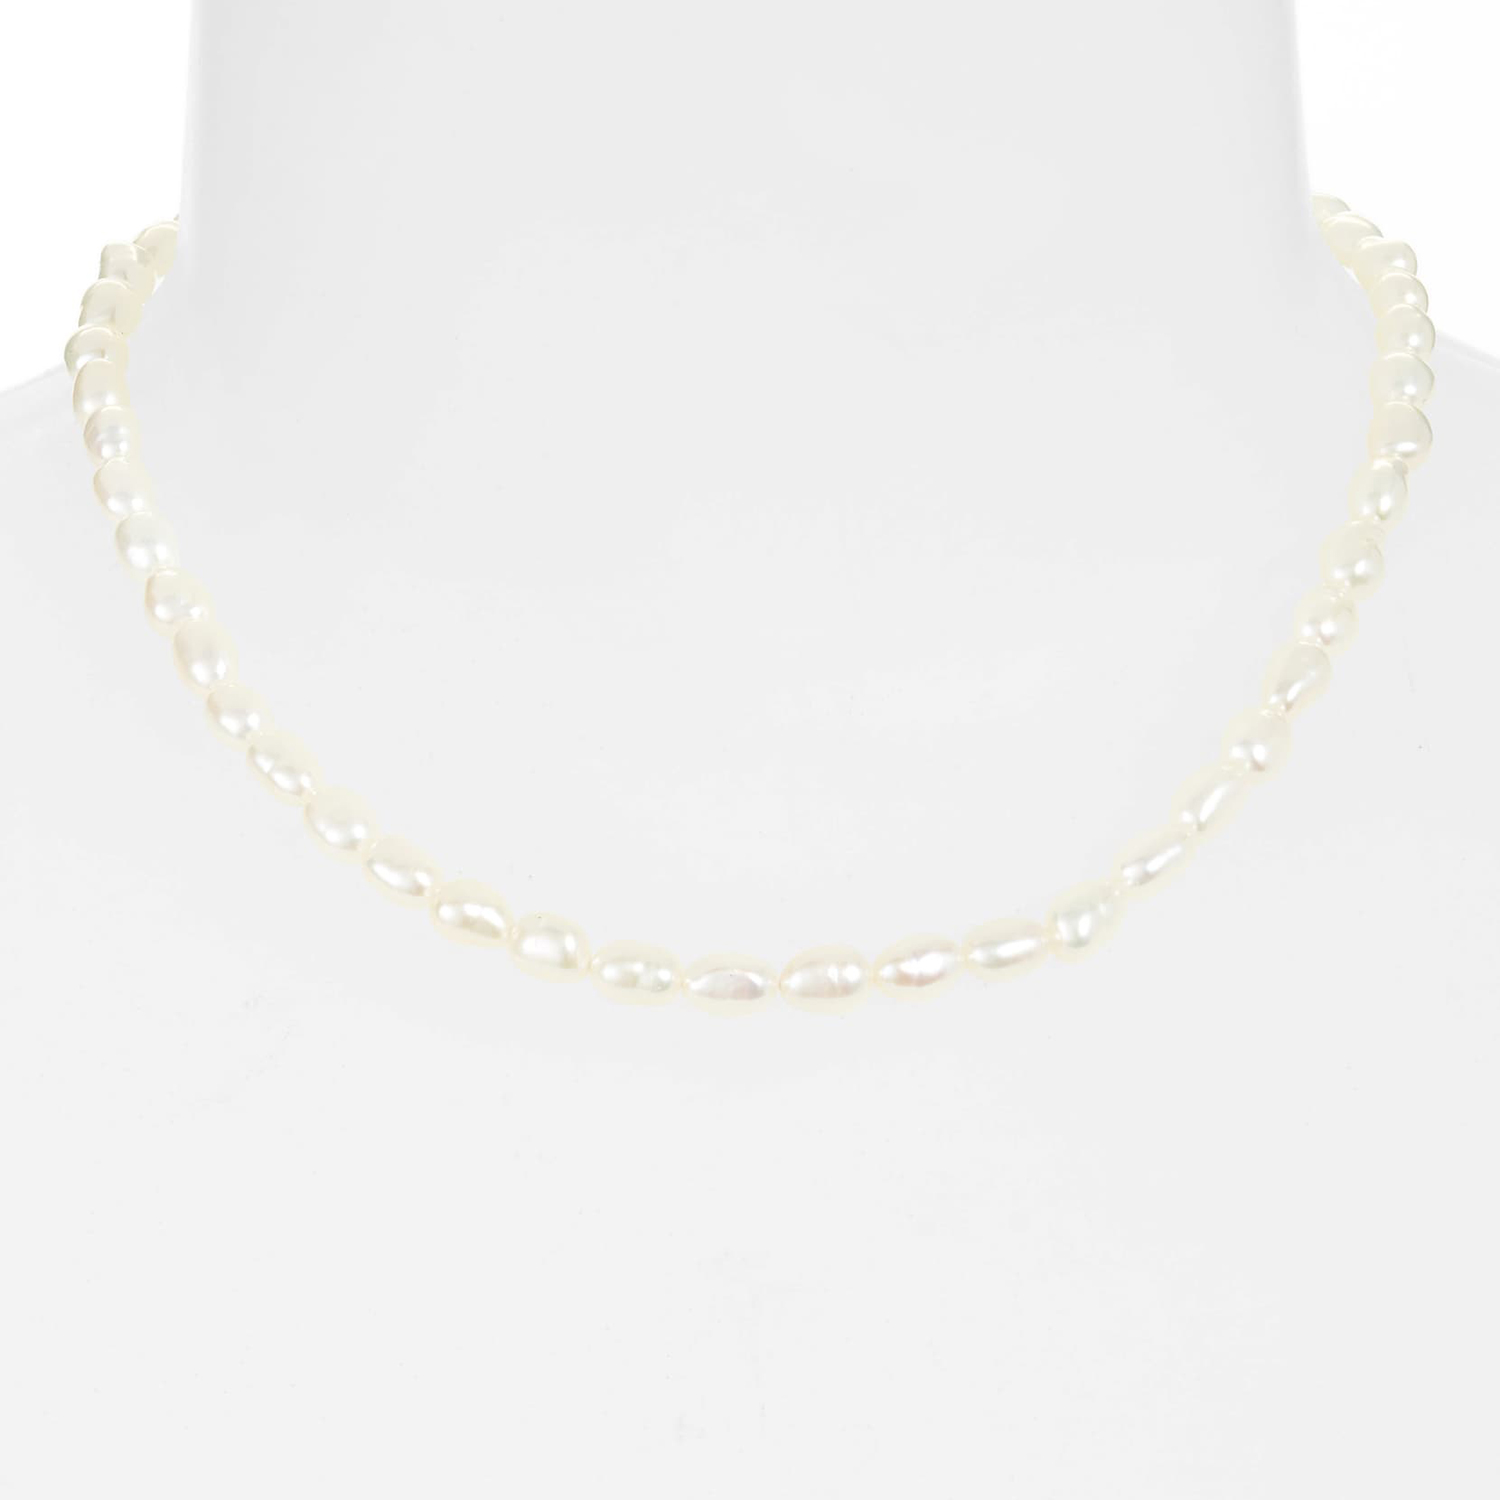 Loren Stewart Del Mar Pearl Necklace